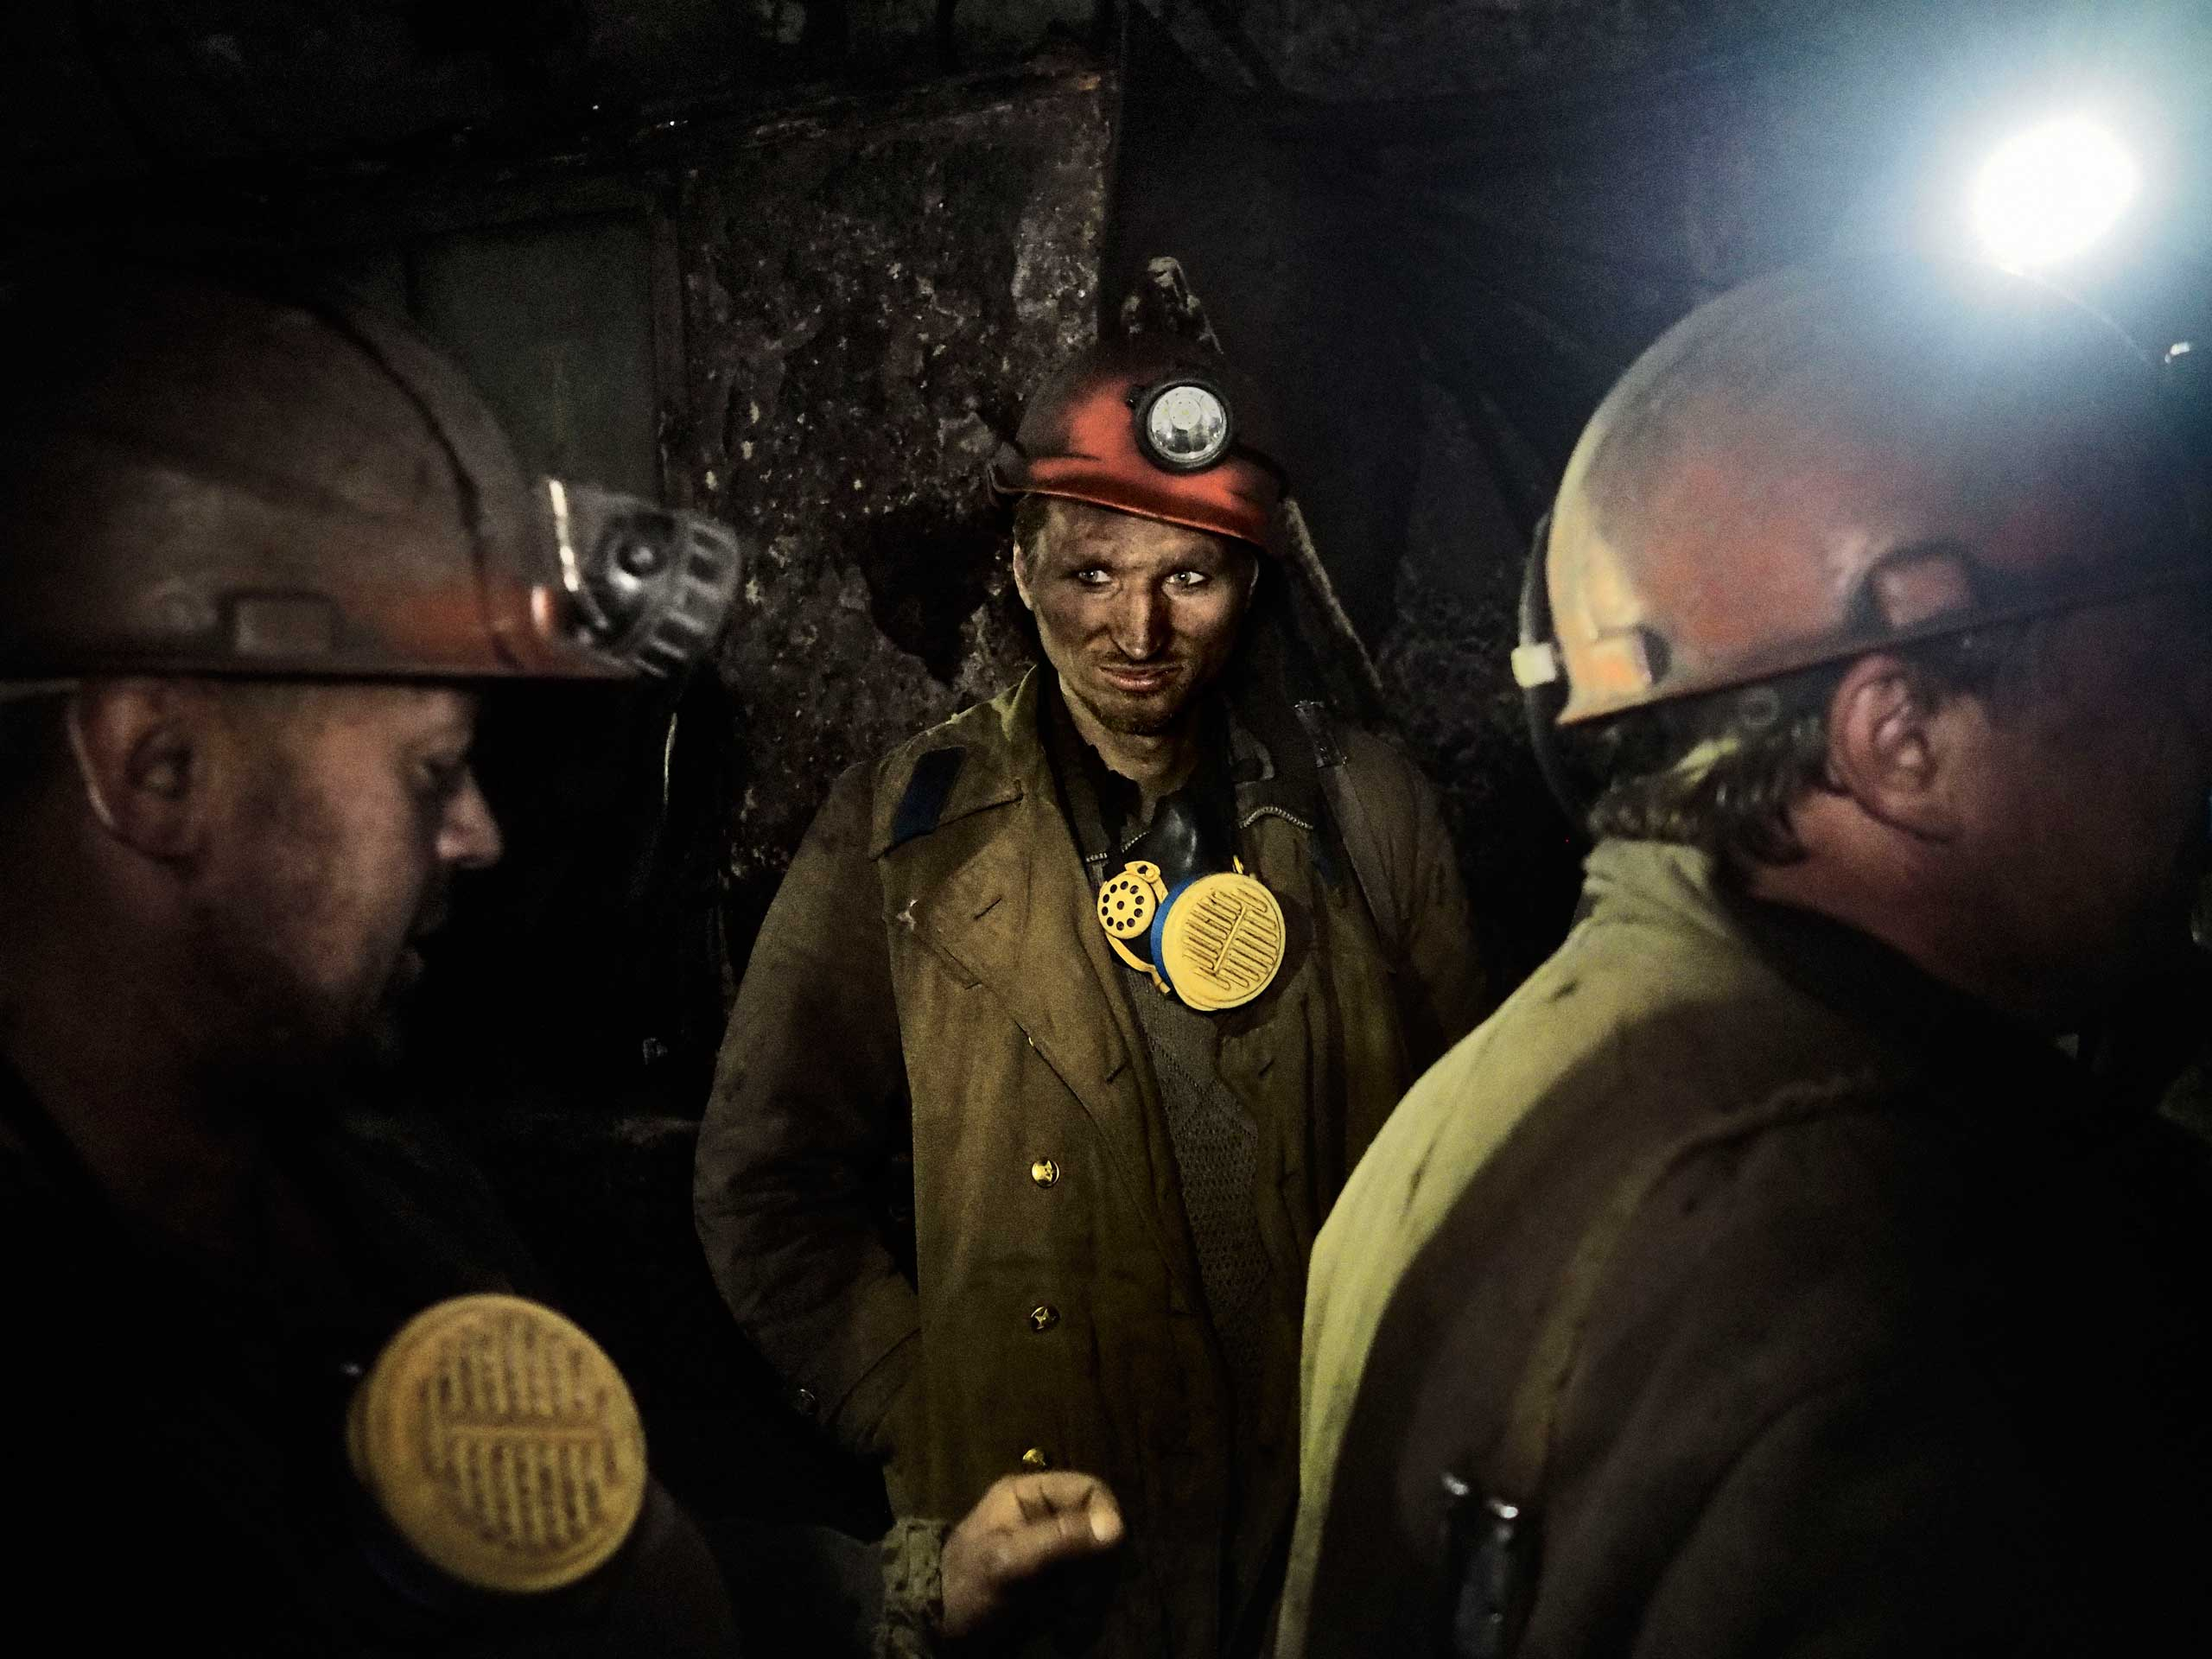 A group of miners wait for a cable car while evacuating the mine's deepest shaft. Petrovskyi district, Donetsk, Ukraine. Nov. 22, 2014.